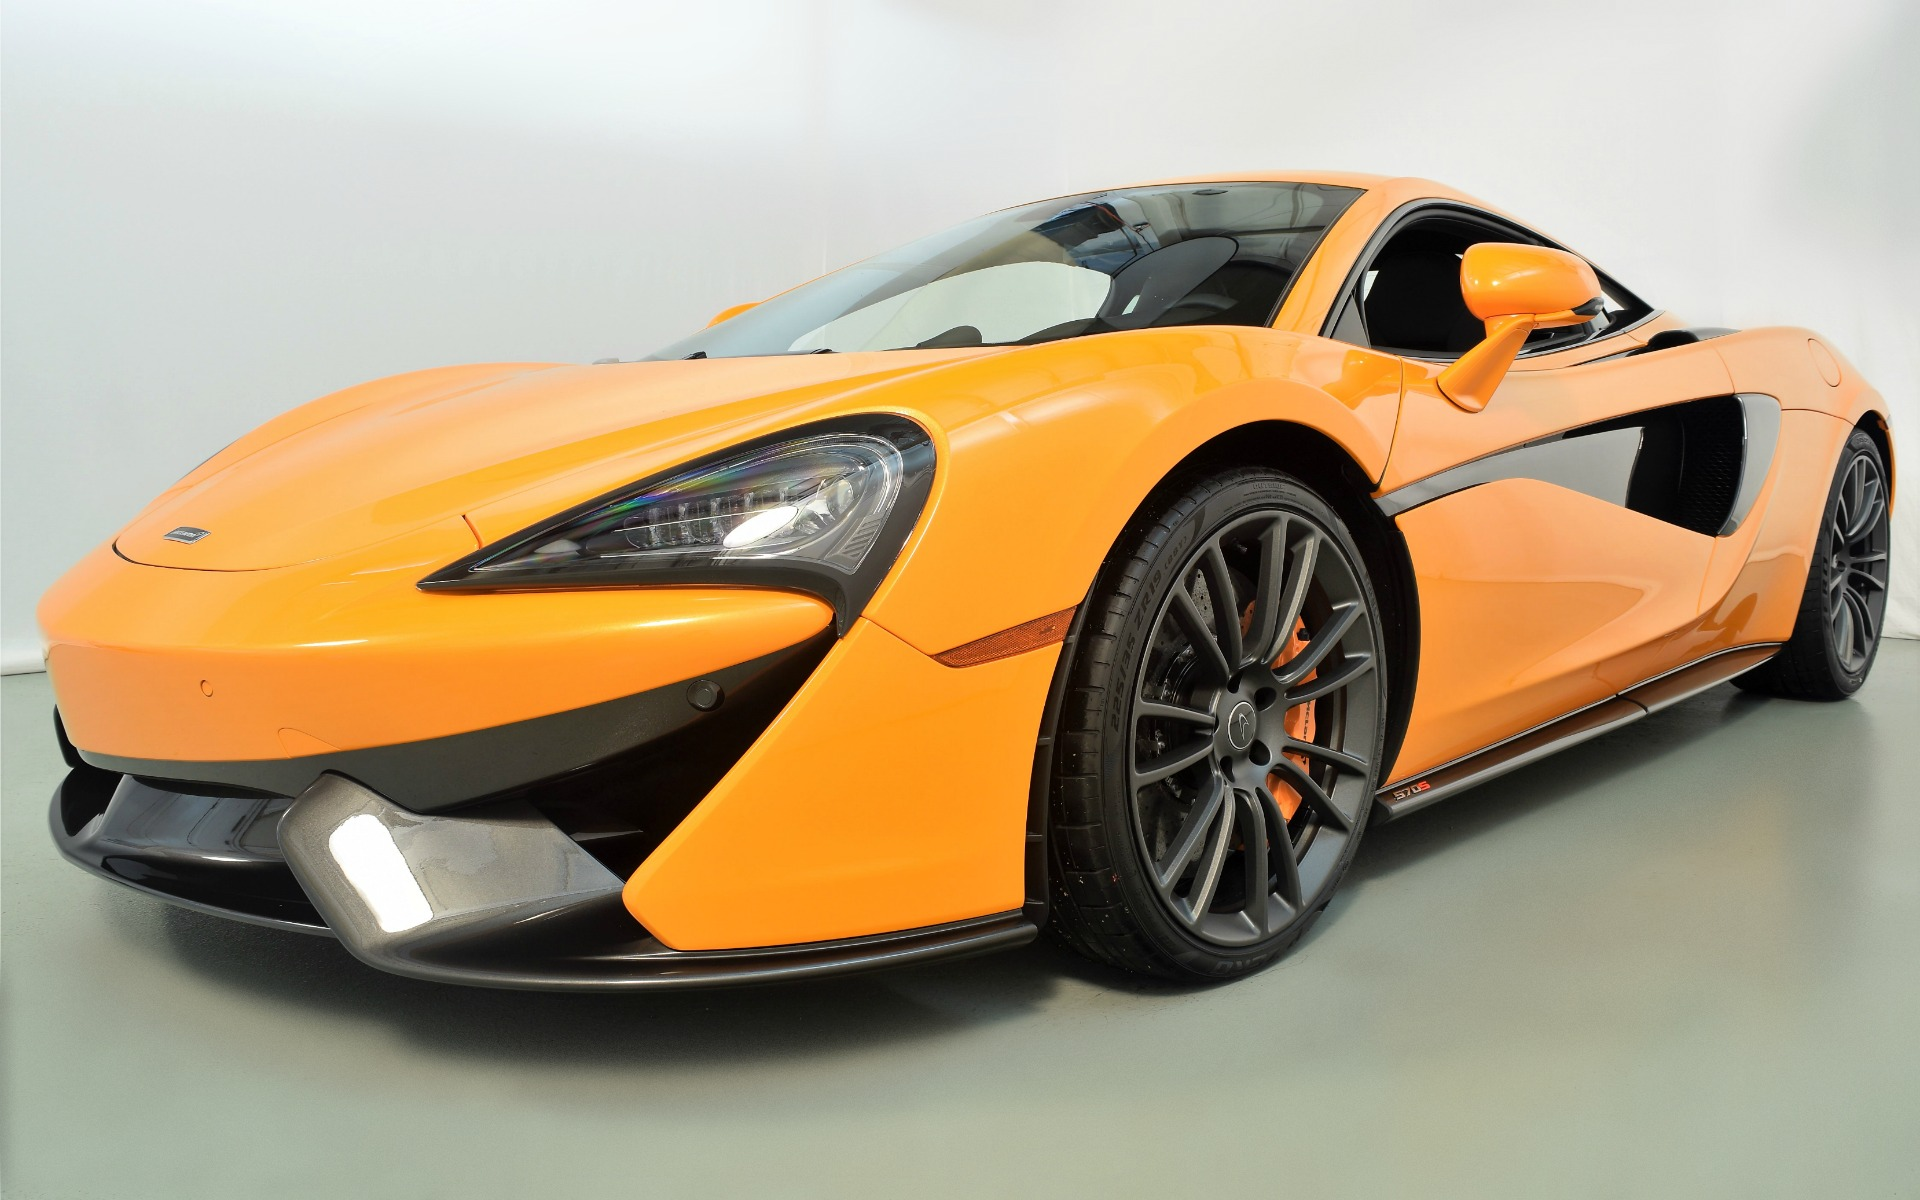 How To Calculate Apr On A Loan >> 2017 MCLAREN 570S For Sale in Norwell, MA 002059 | Mclaren Boston